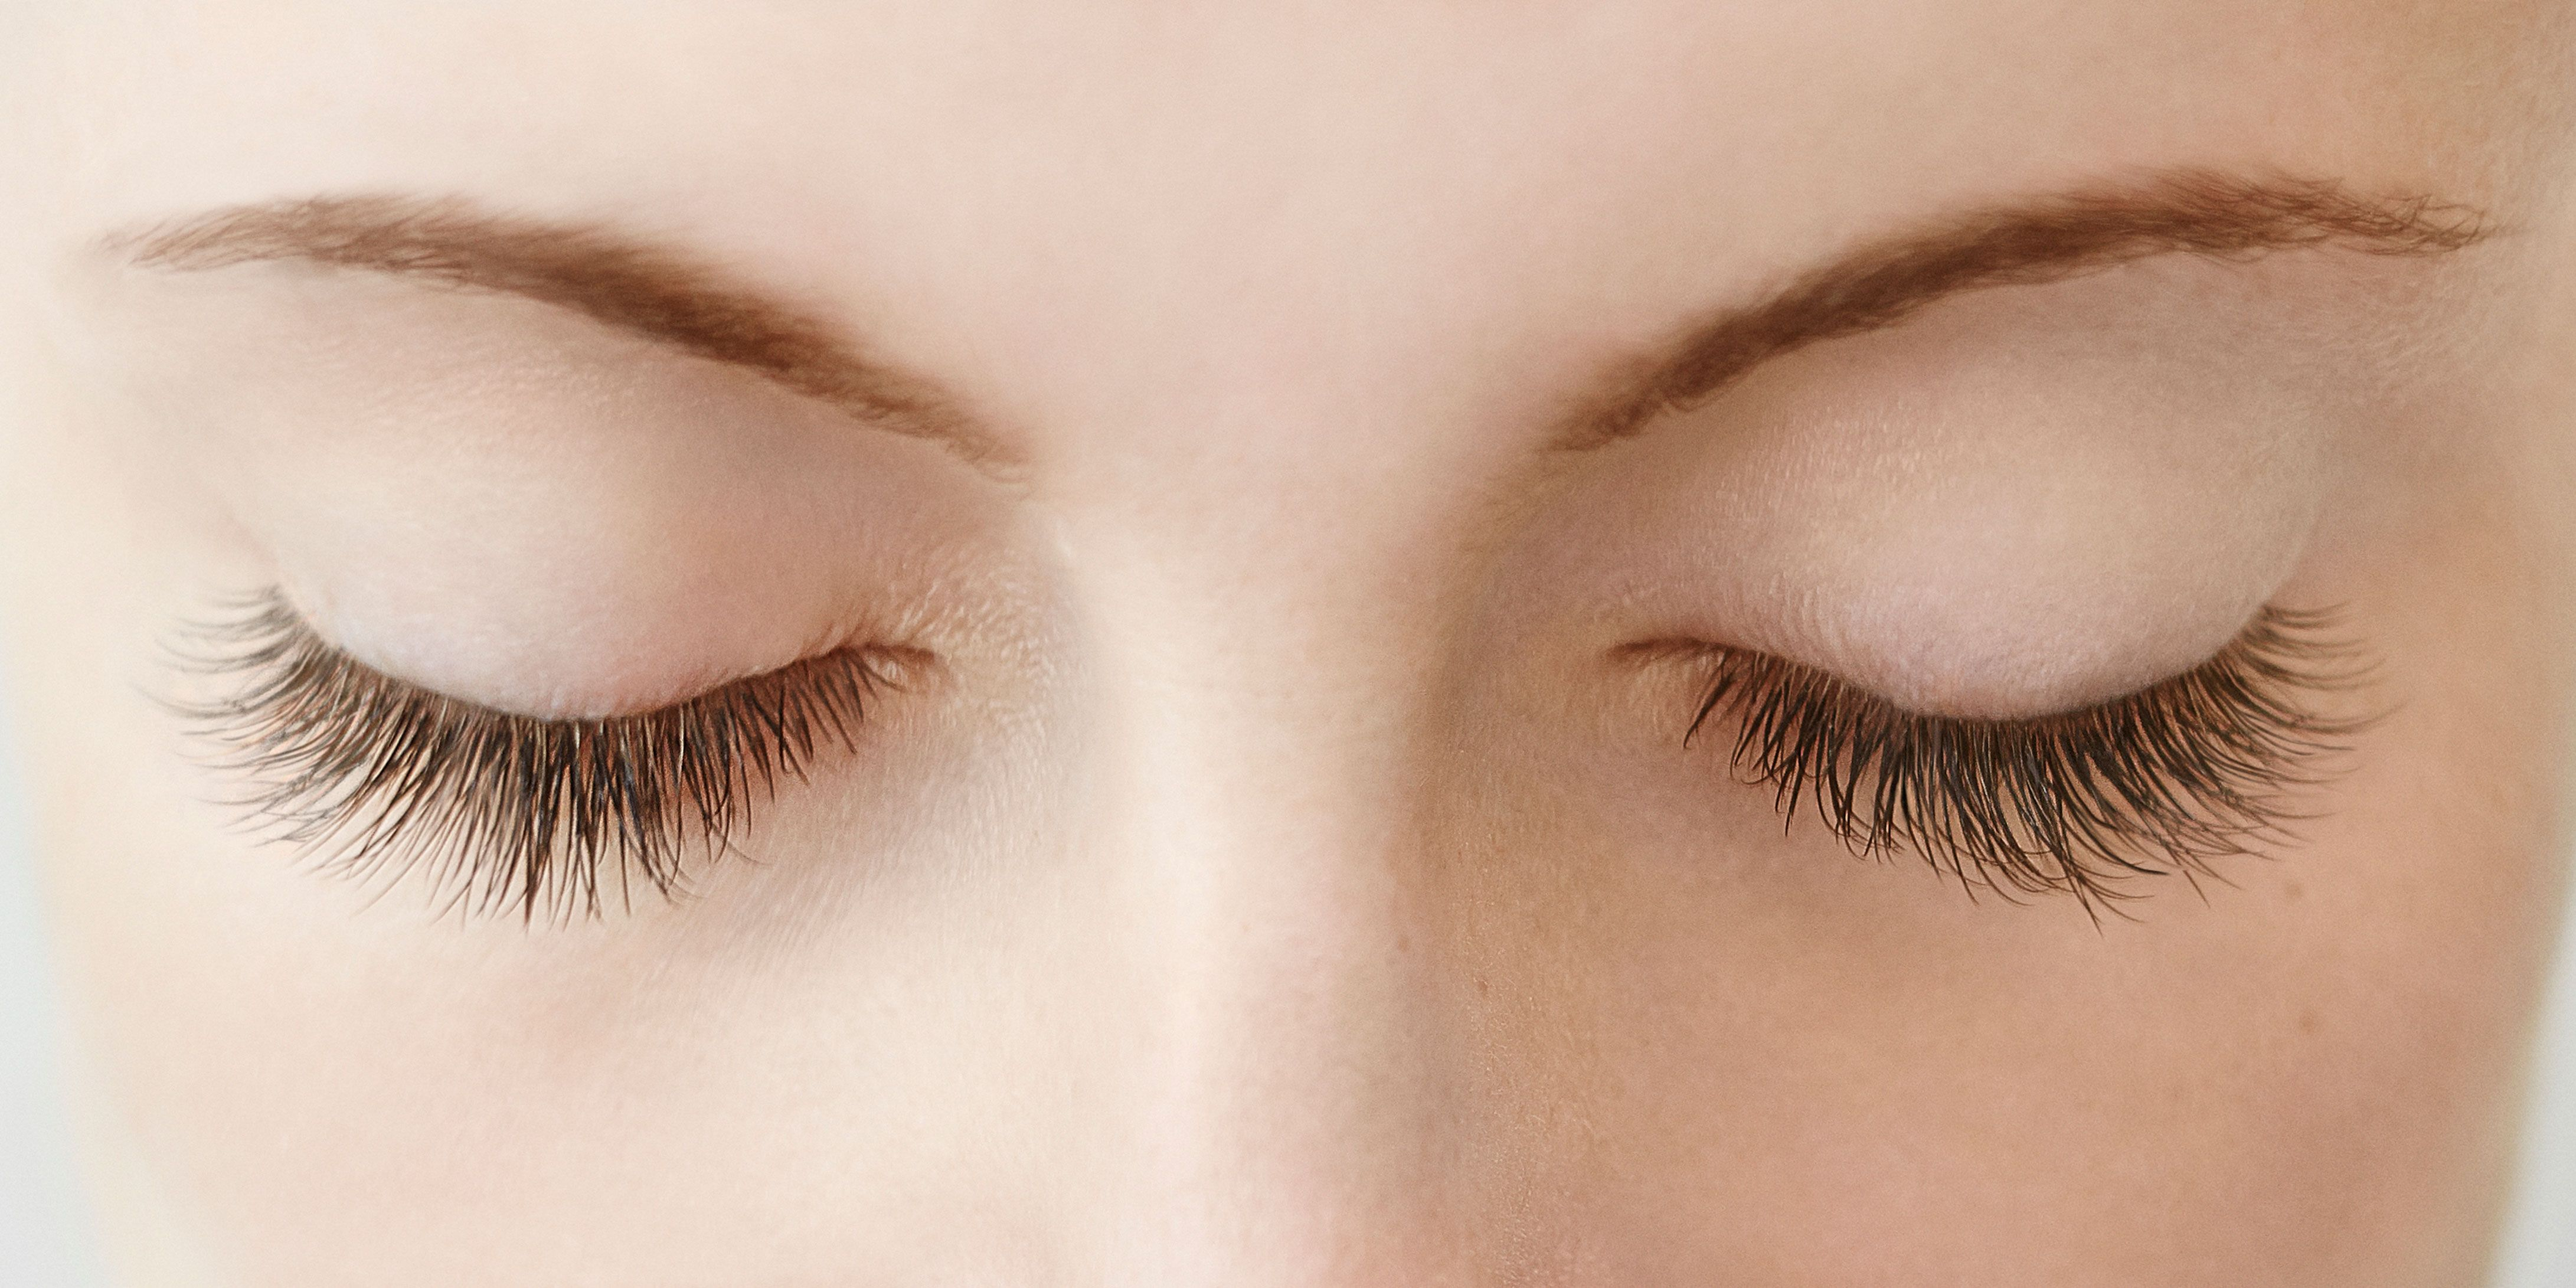 The Controversial Eyelash Lengthening Product You Need To Know About